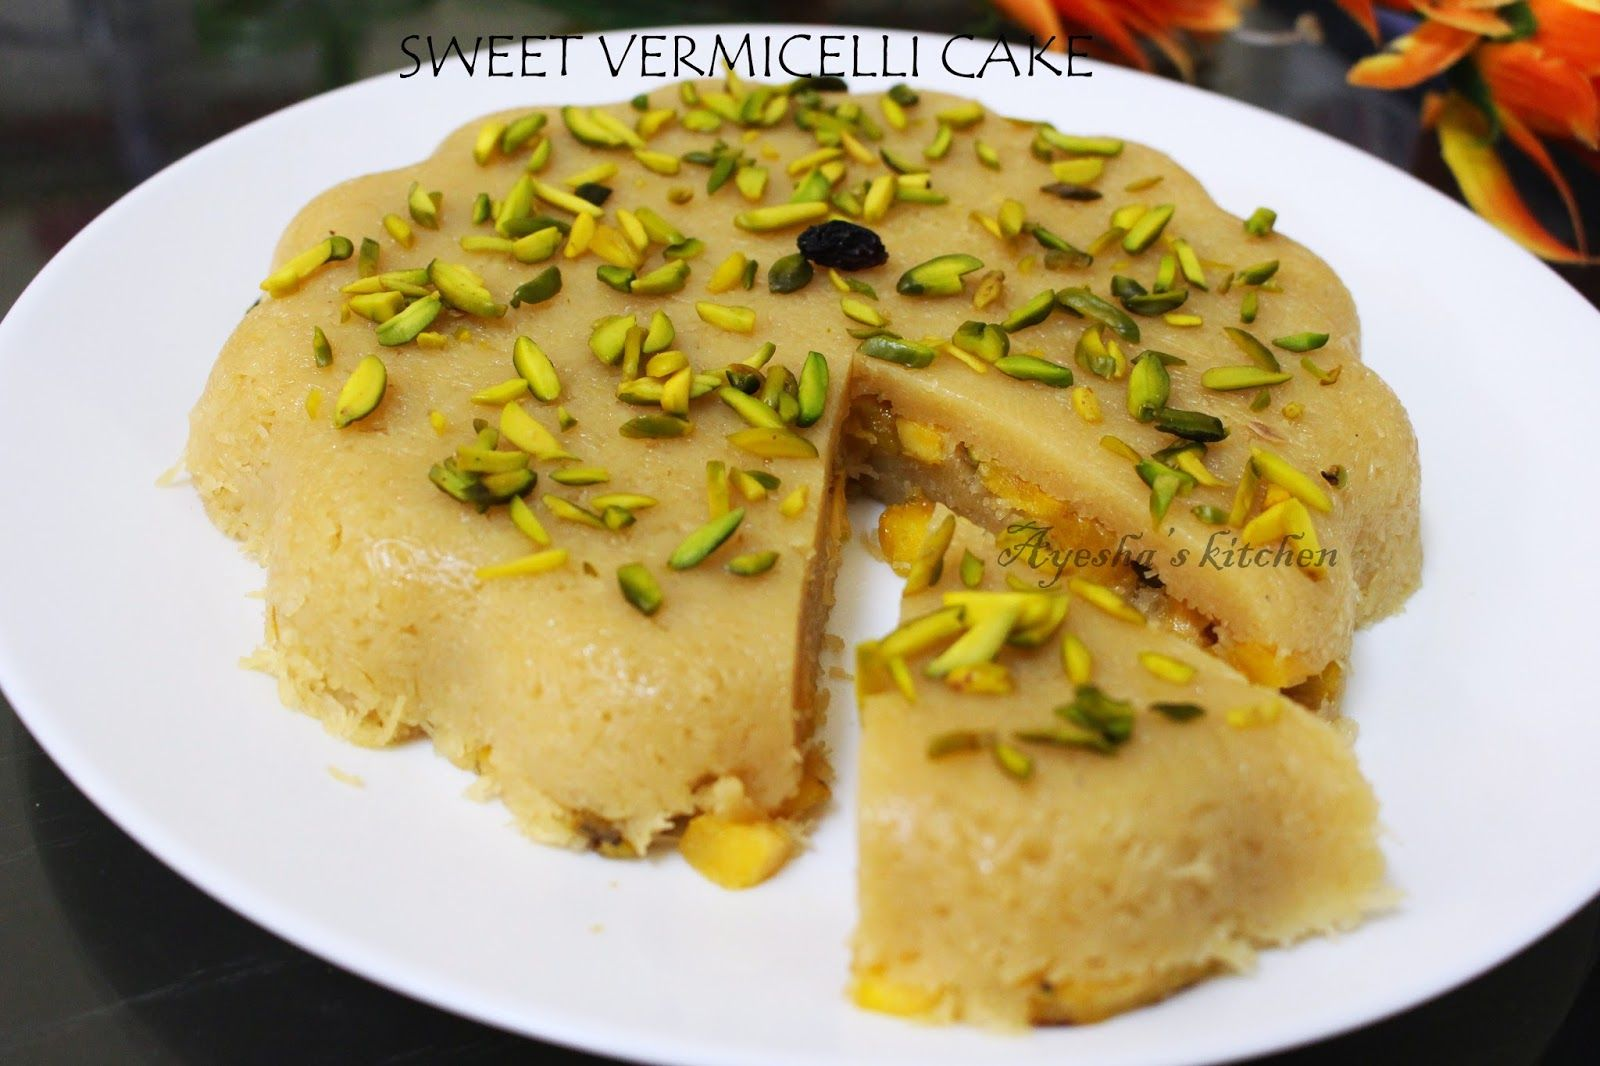 Ayeshas kitchen easy dessert recipes vermicelli banana cake here is a great easy dessert recipe for you with vermicelli semiya it can be prepared in 15 minutes and can be served once cooled forumfinder Images